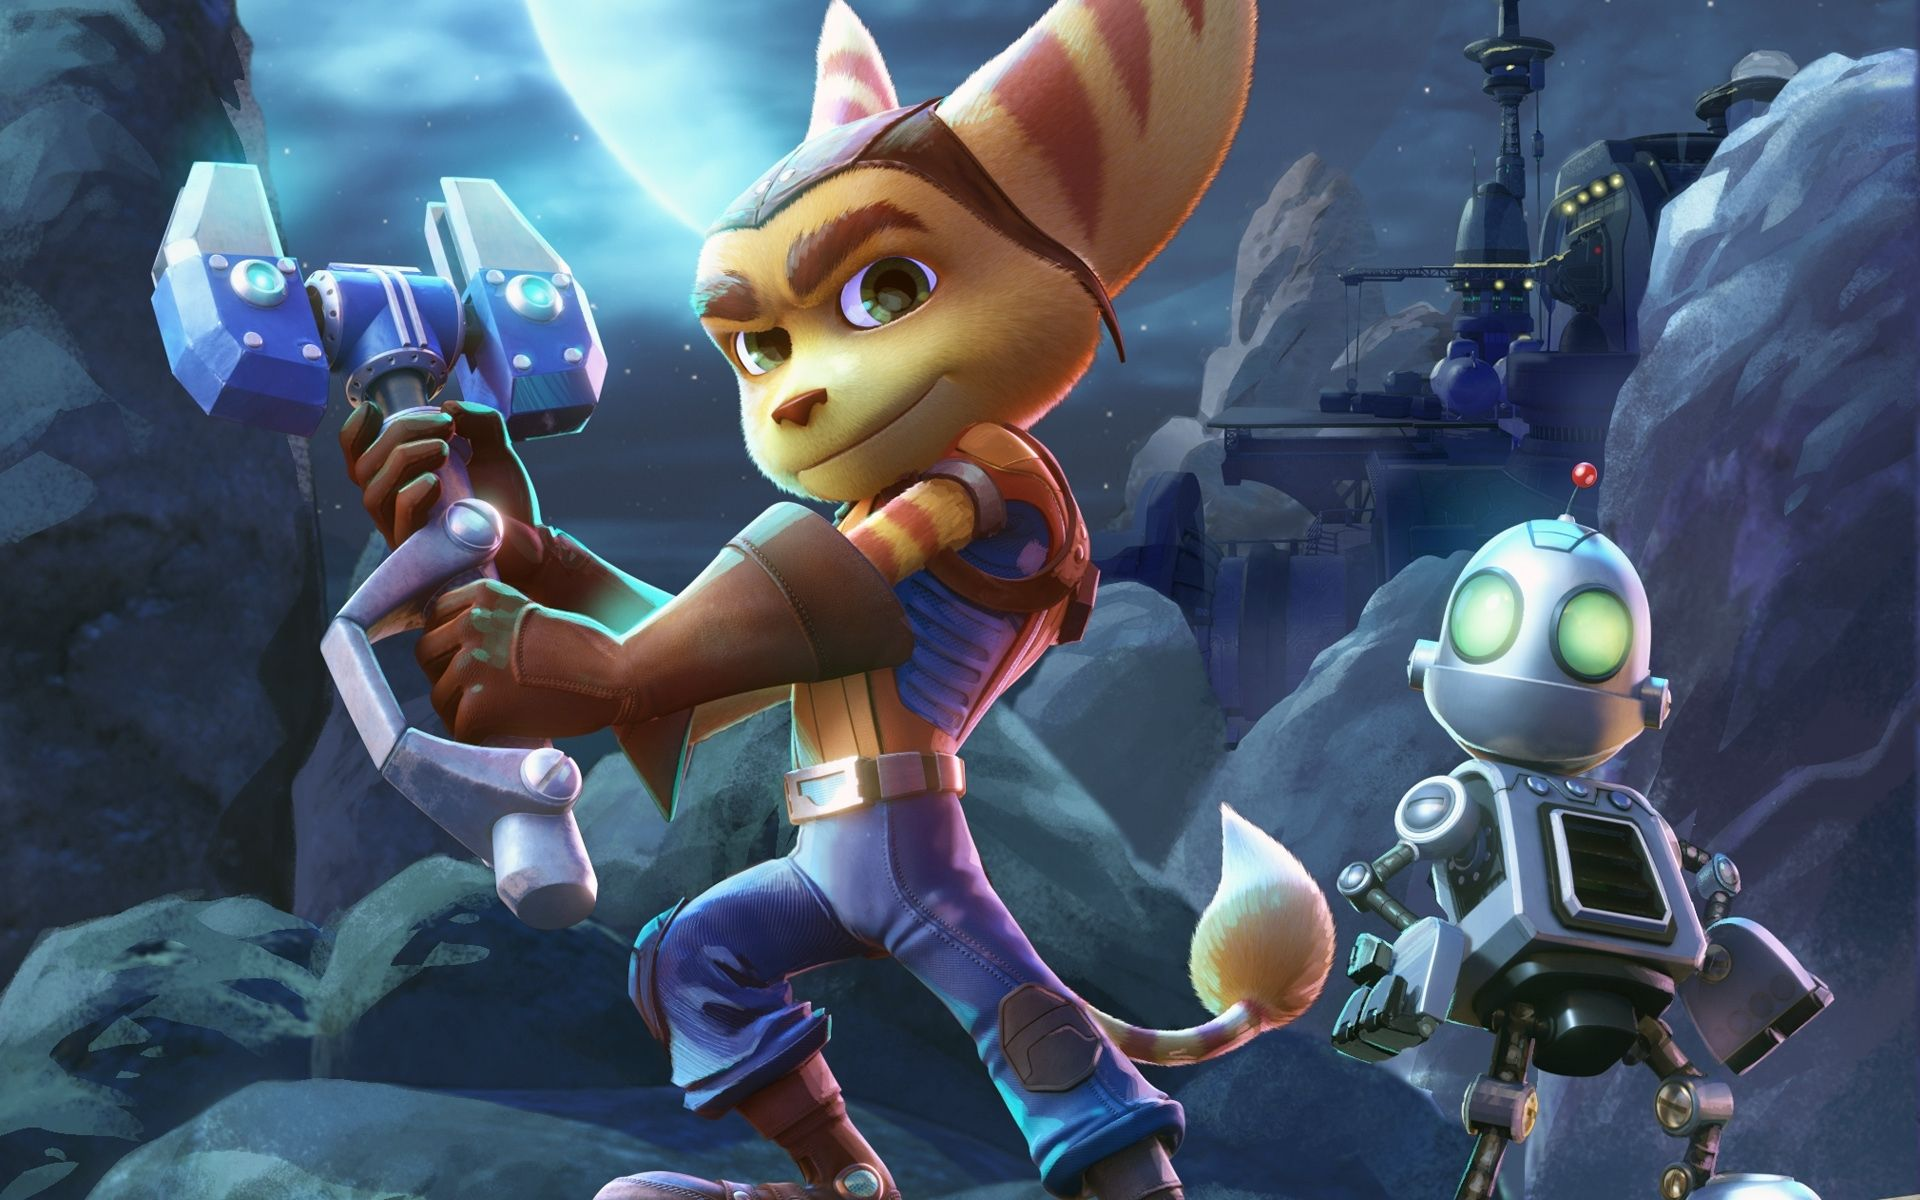 10 Best Ratchet And Clank Movie Wallpaper Full Hd 1080p For Pc Desktop Video Game Movies Movie Wallpapers Ratchet